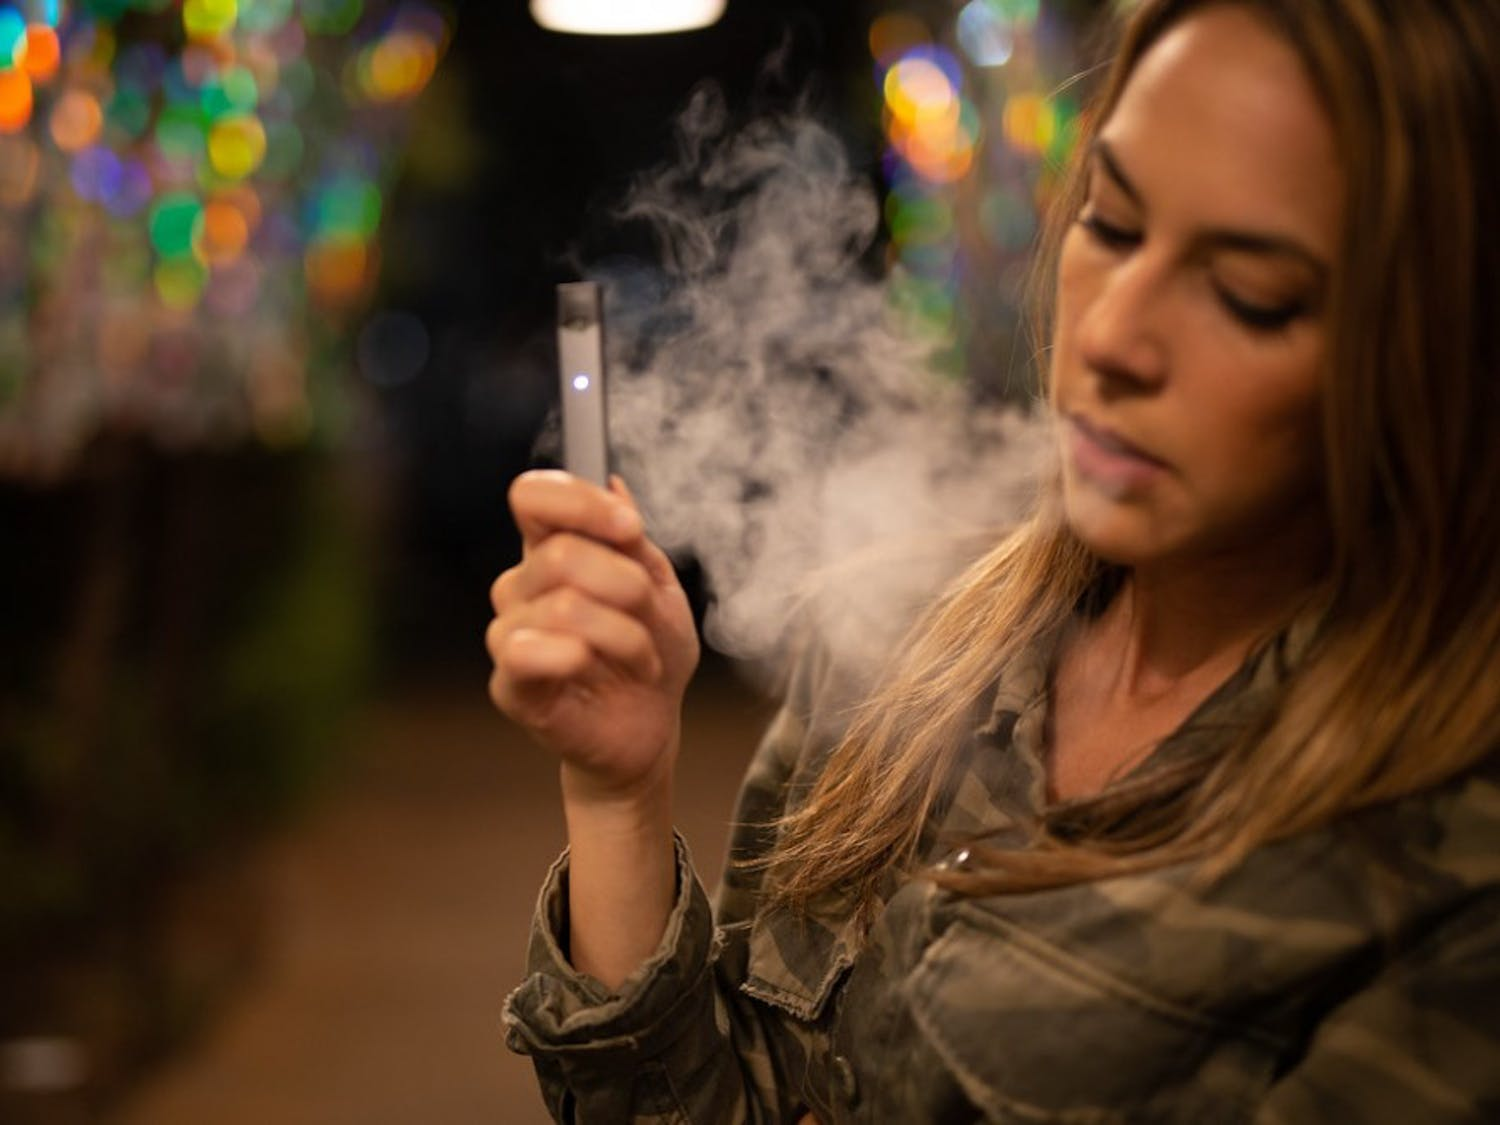 Rebecca takes an extra long hit from her beloved Juul, something she will never again take for granted.